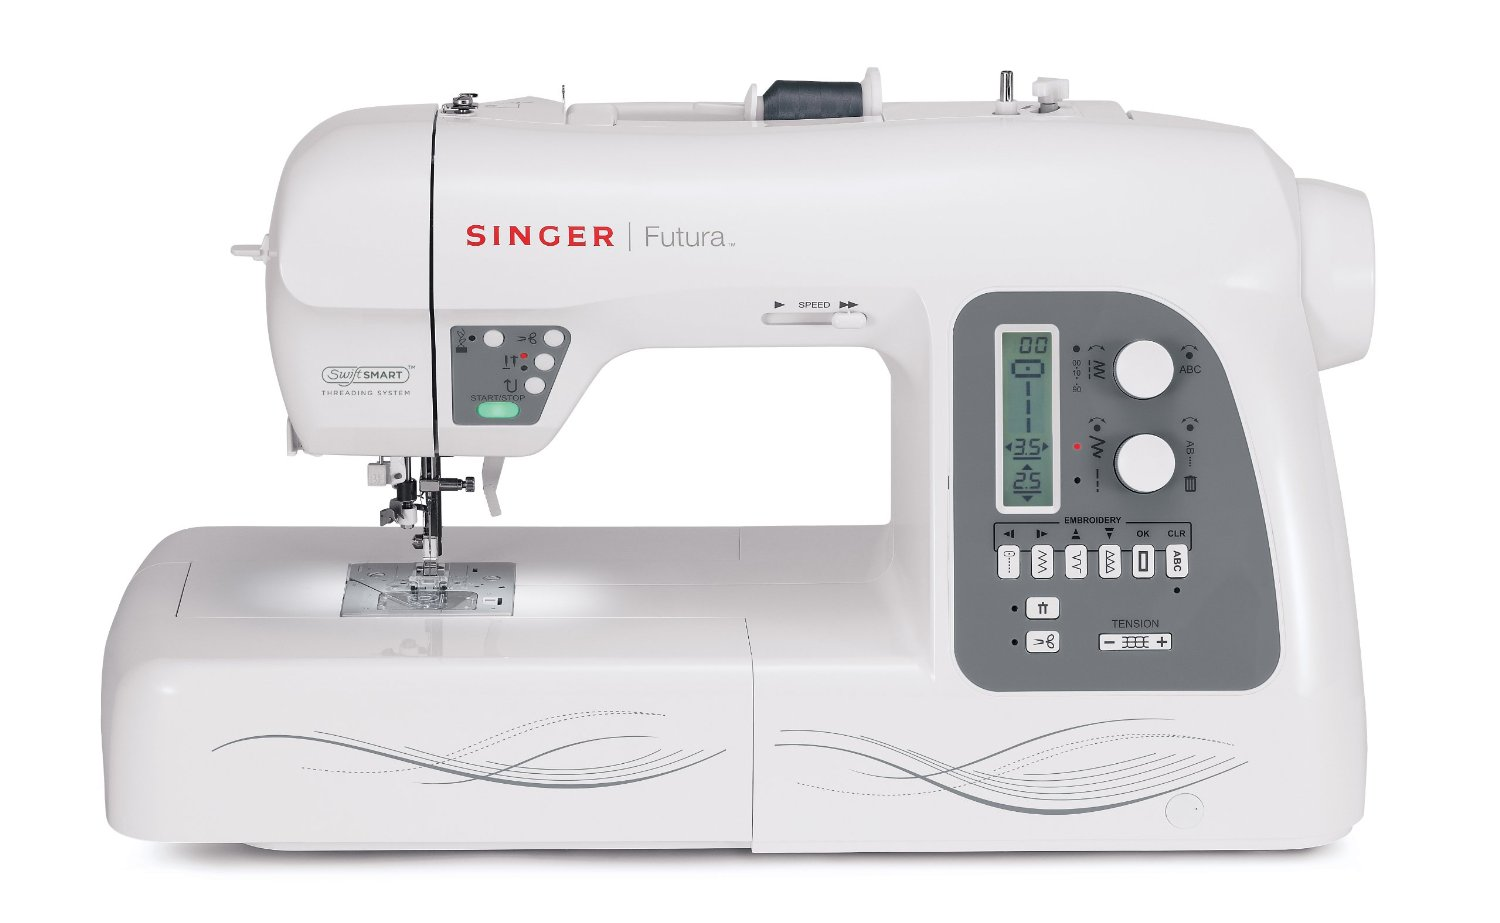 Singer Futura Xl 550 Review Sewing And Embroidery Machine Combo